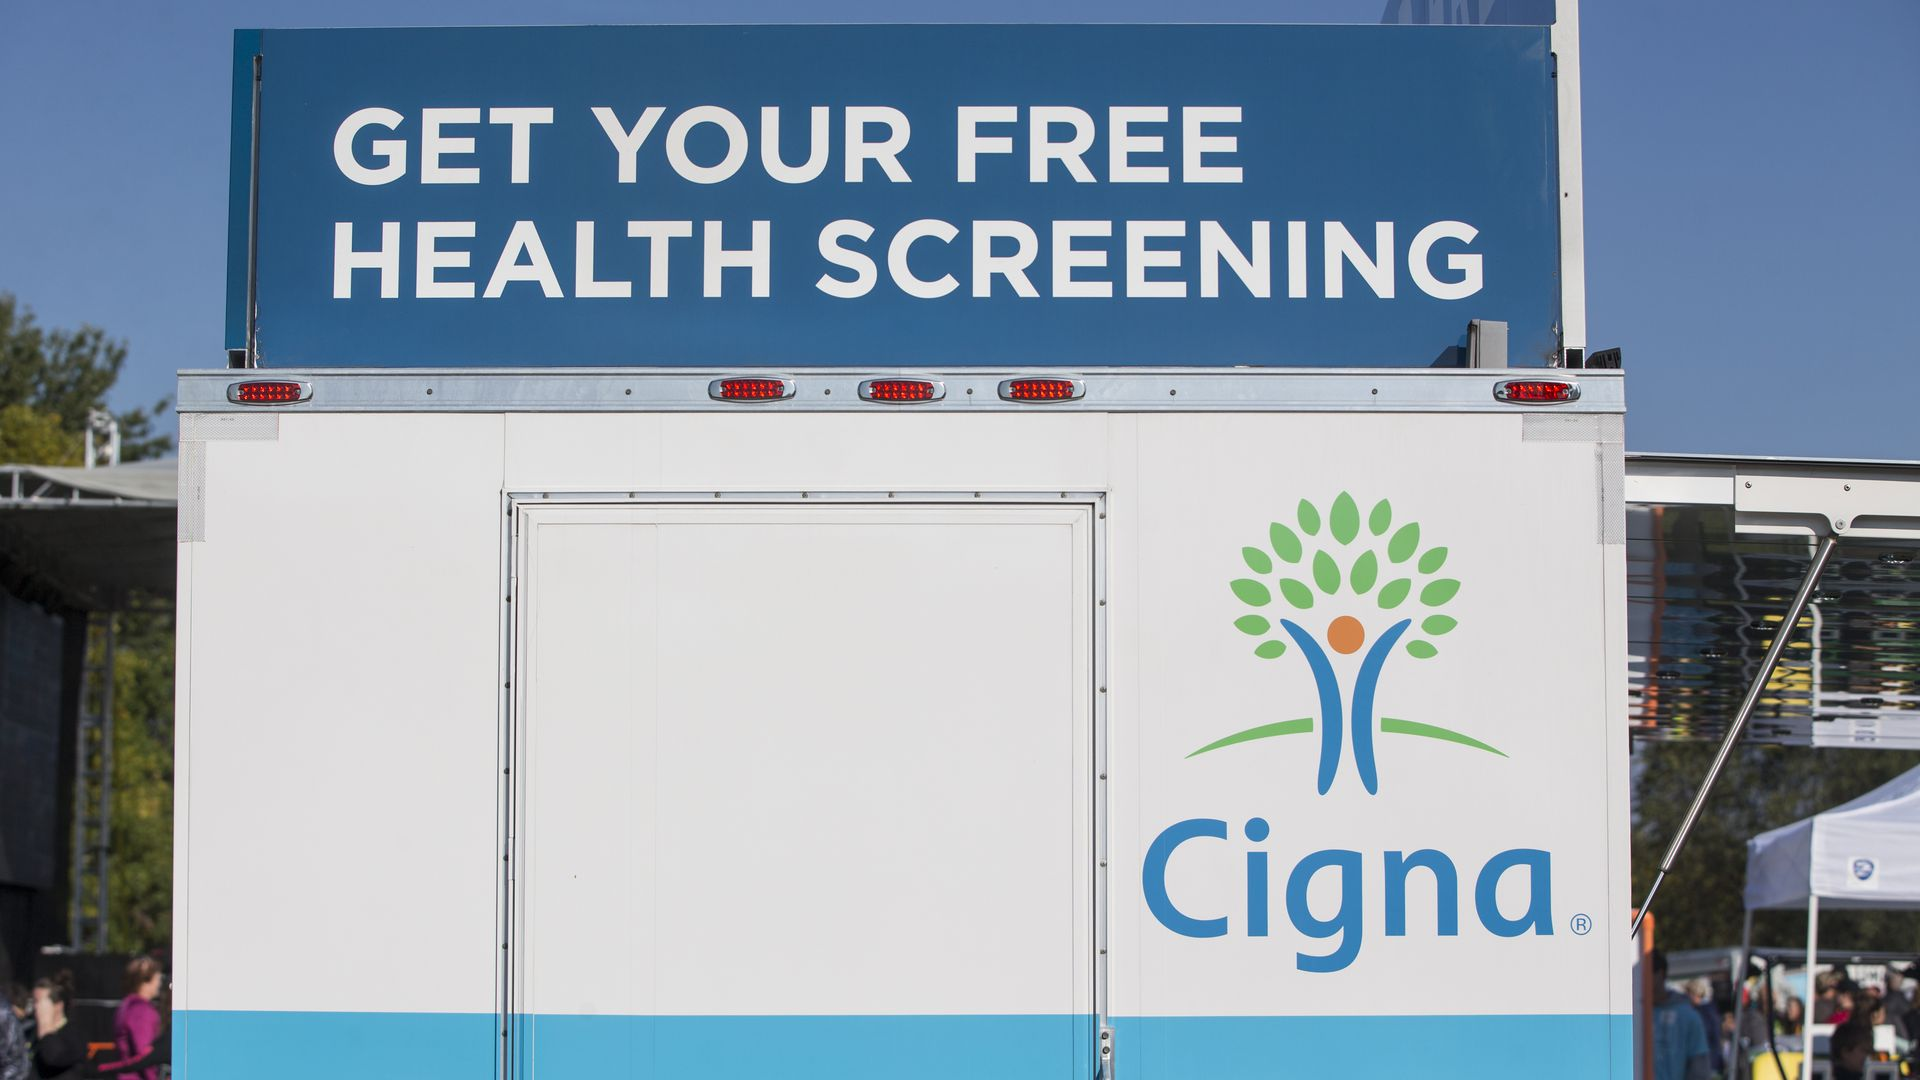 A Cigna cart promoting health screenings.